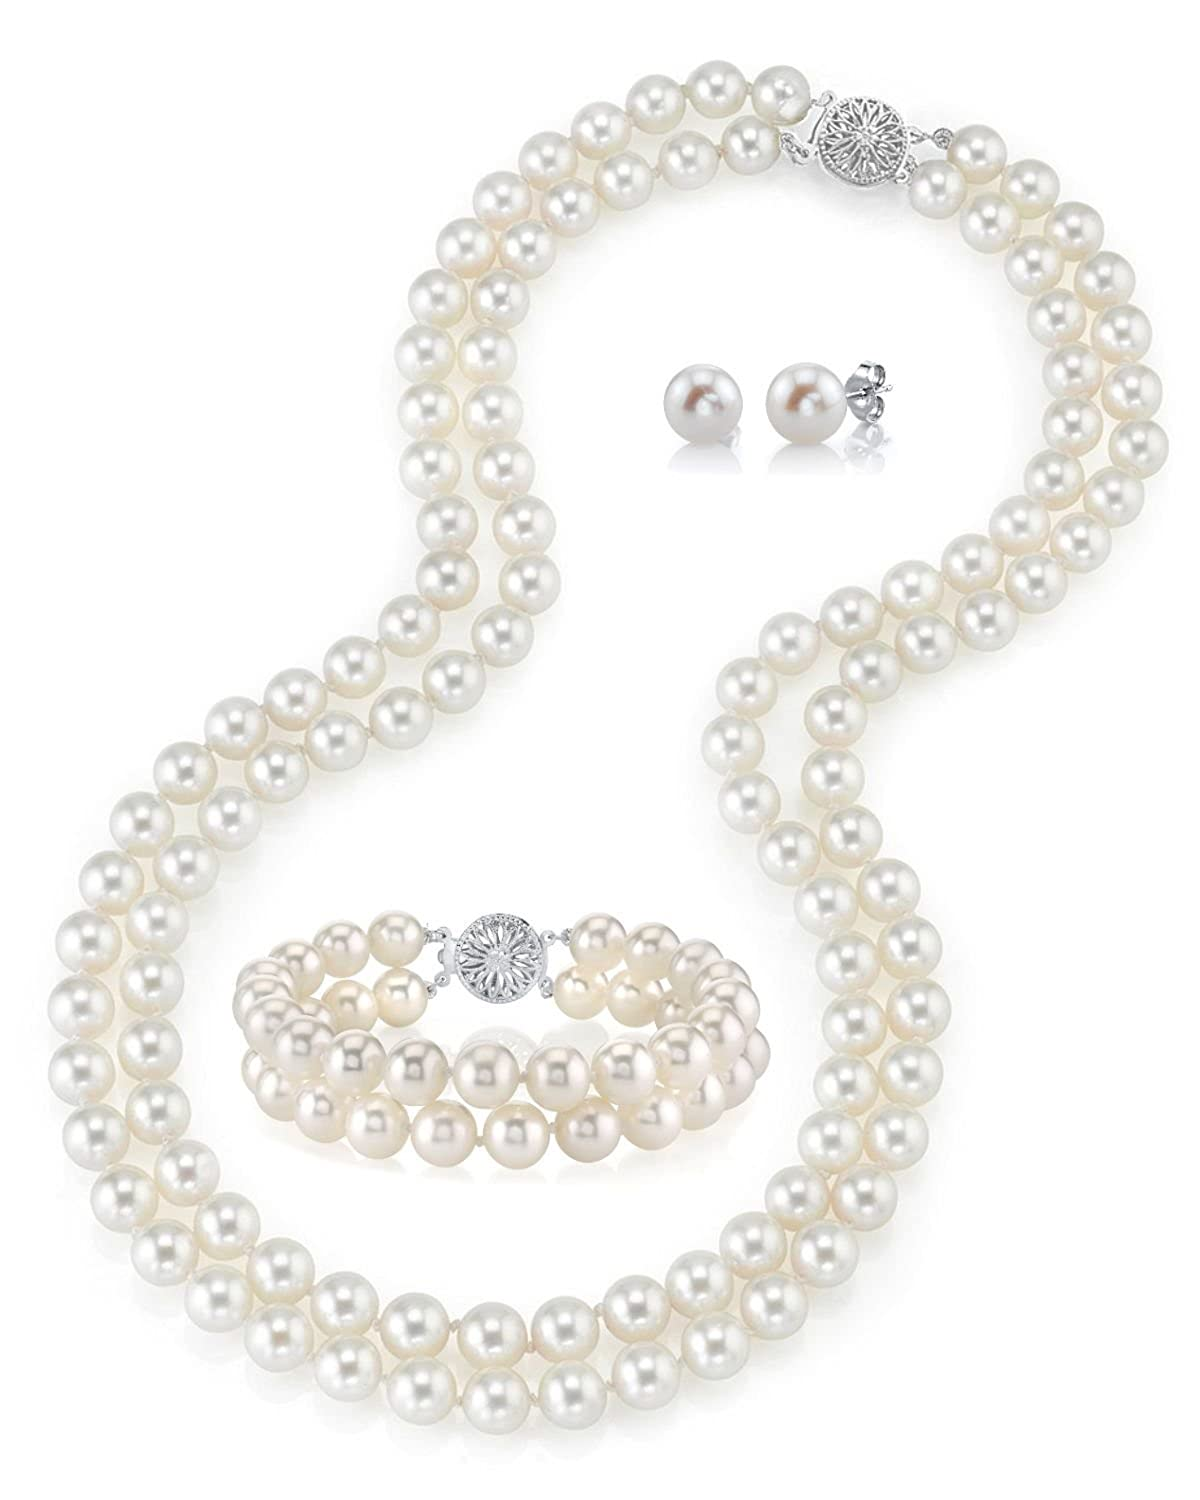 "14K Gold White Freshwater Cultured Double Strand Cultured Pearl Necklace, Bracelet & Earrings Set – AAA Quality, 16-17"" Necklace Length"